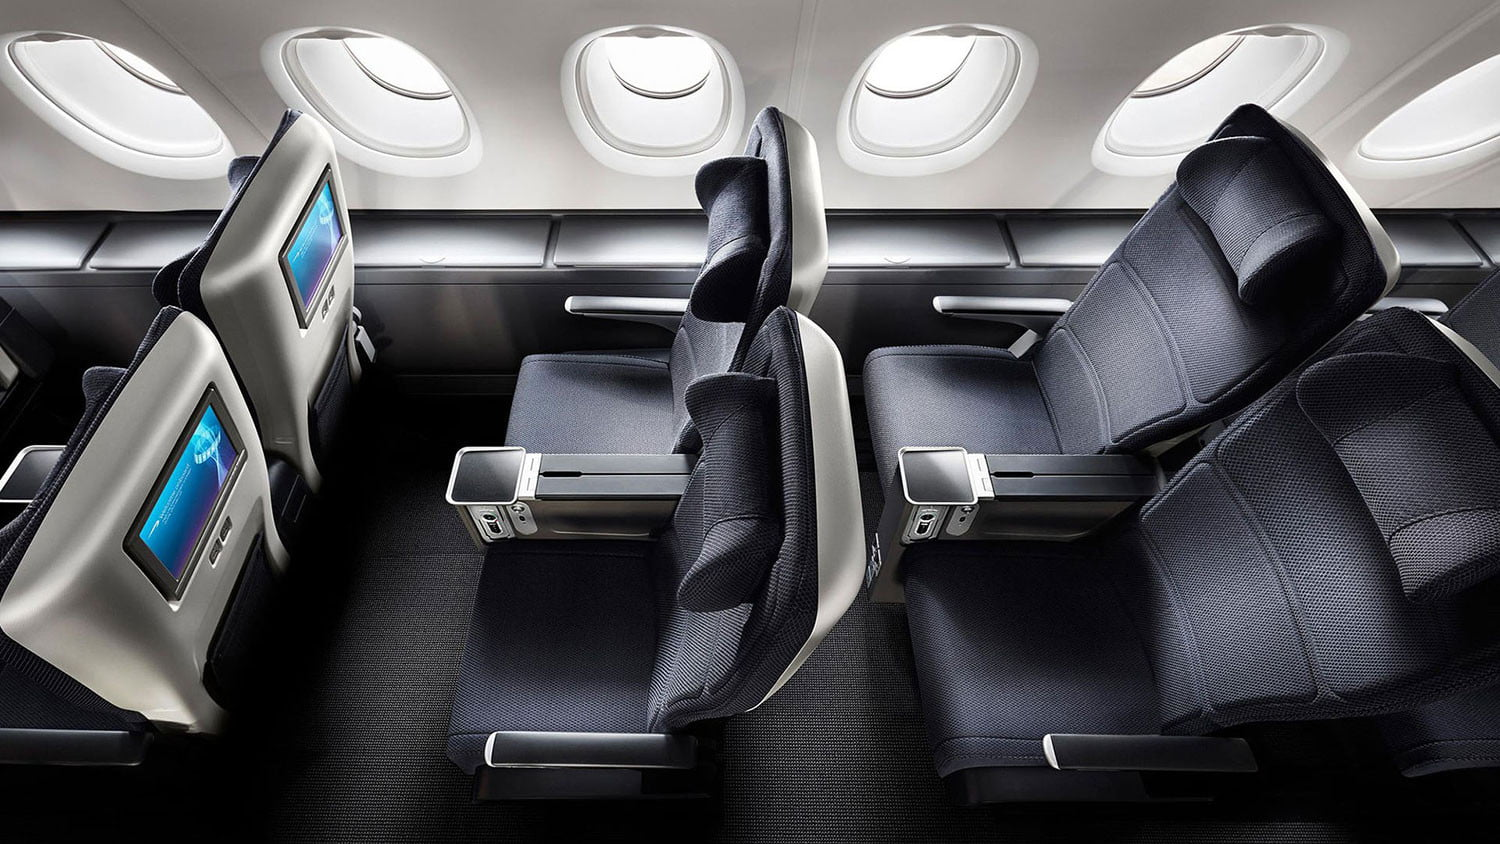 9 Premium Economy Classes Stretch Your Legs And Your